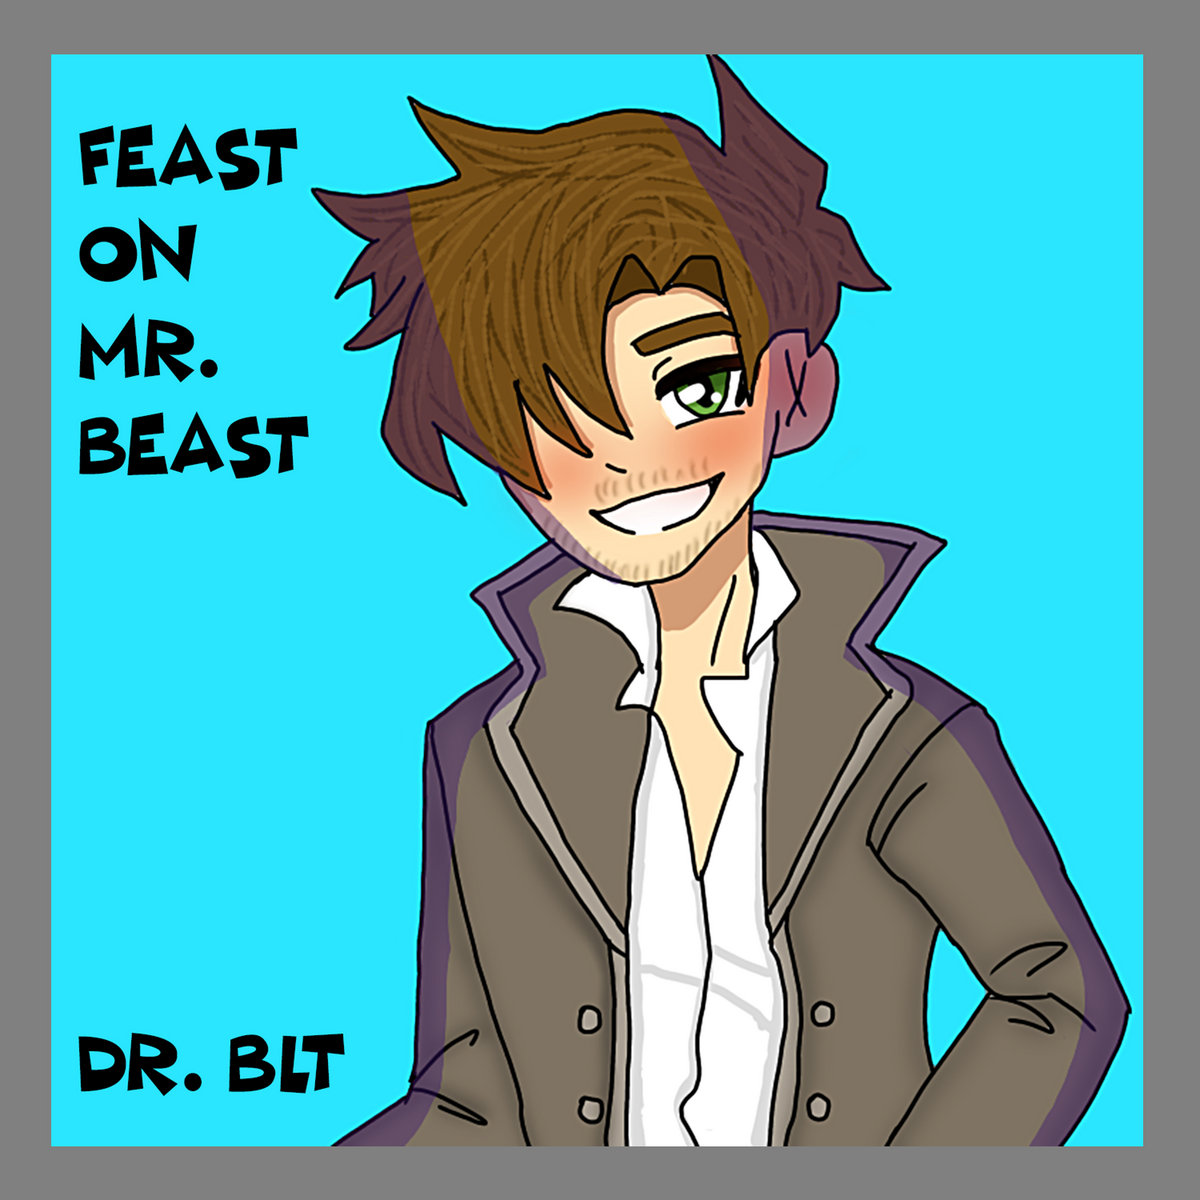 Feast on Mr. Beast by Dr BLT